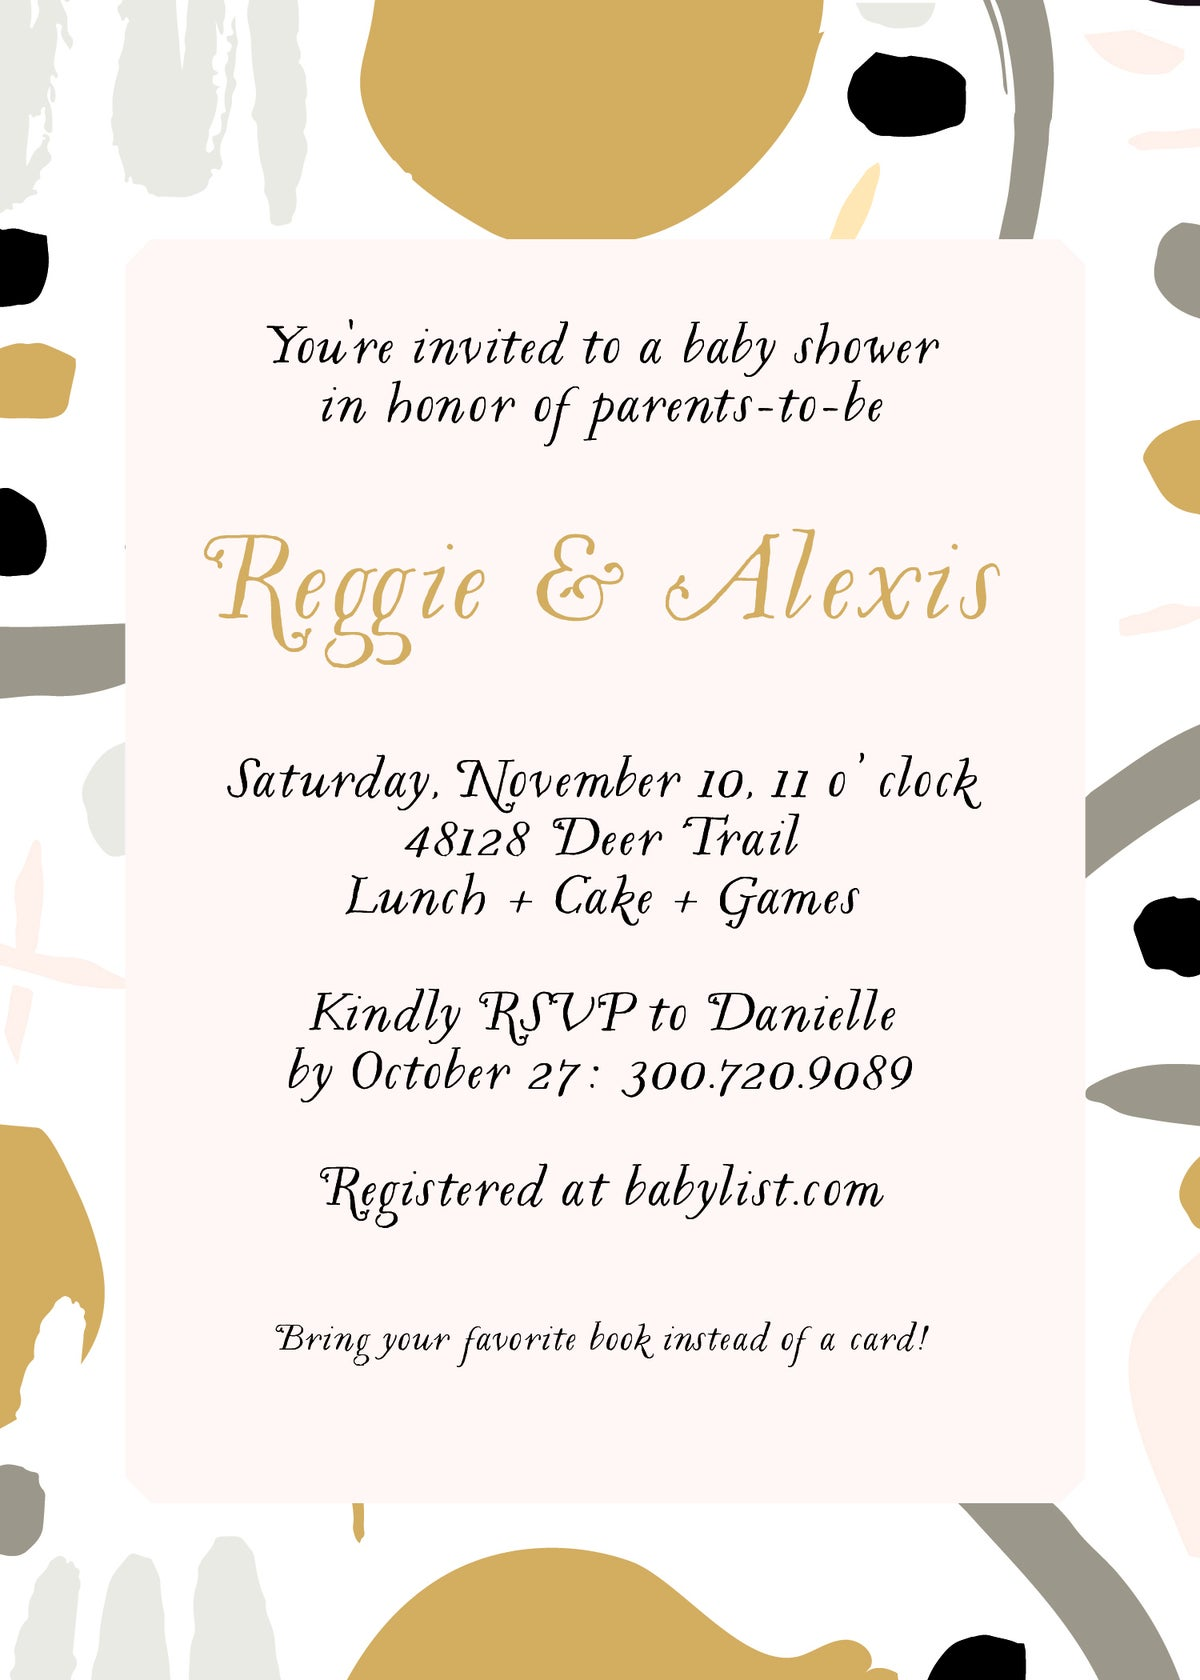 Abstract Art Baby Shower